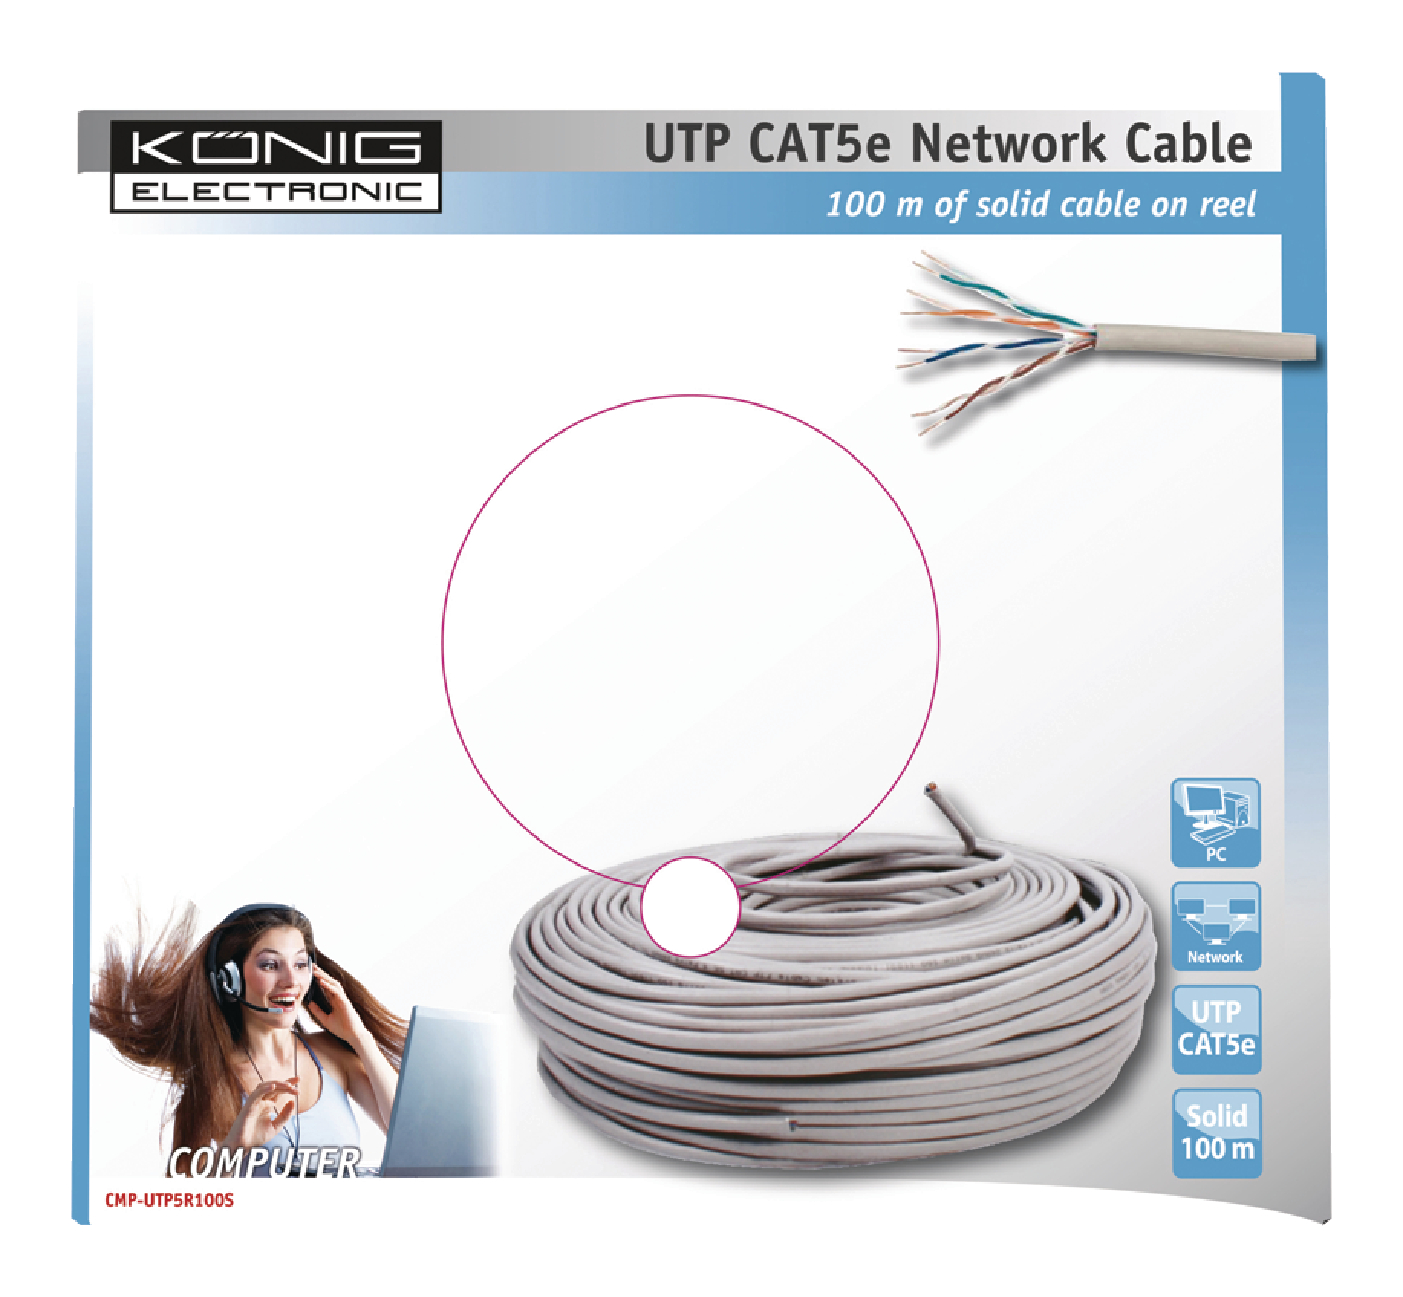 Cmp Utp5r100s Knig Network Cable On Reel Cat5e Utp 100 M Grey Wiring Diagram Solid